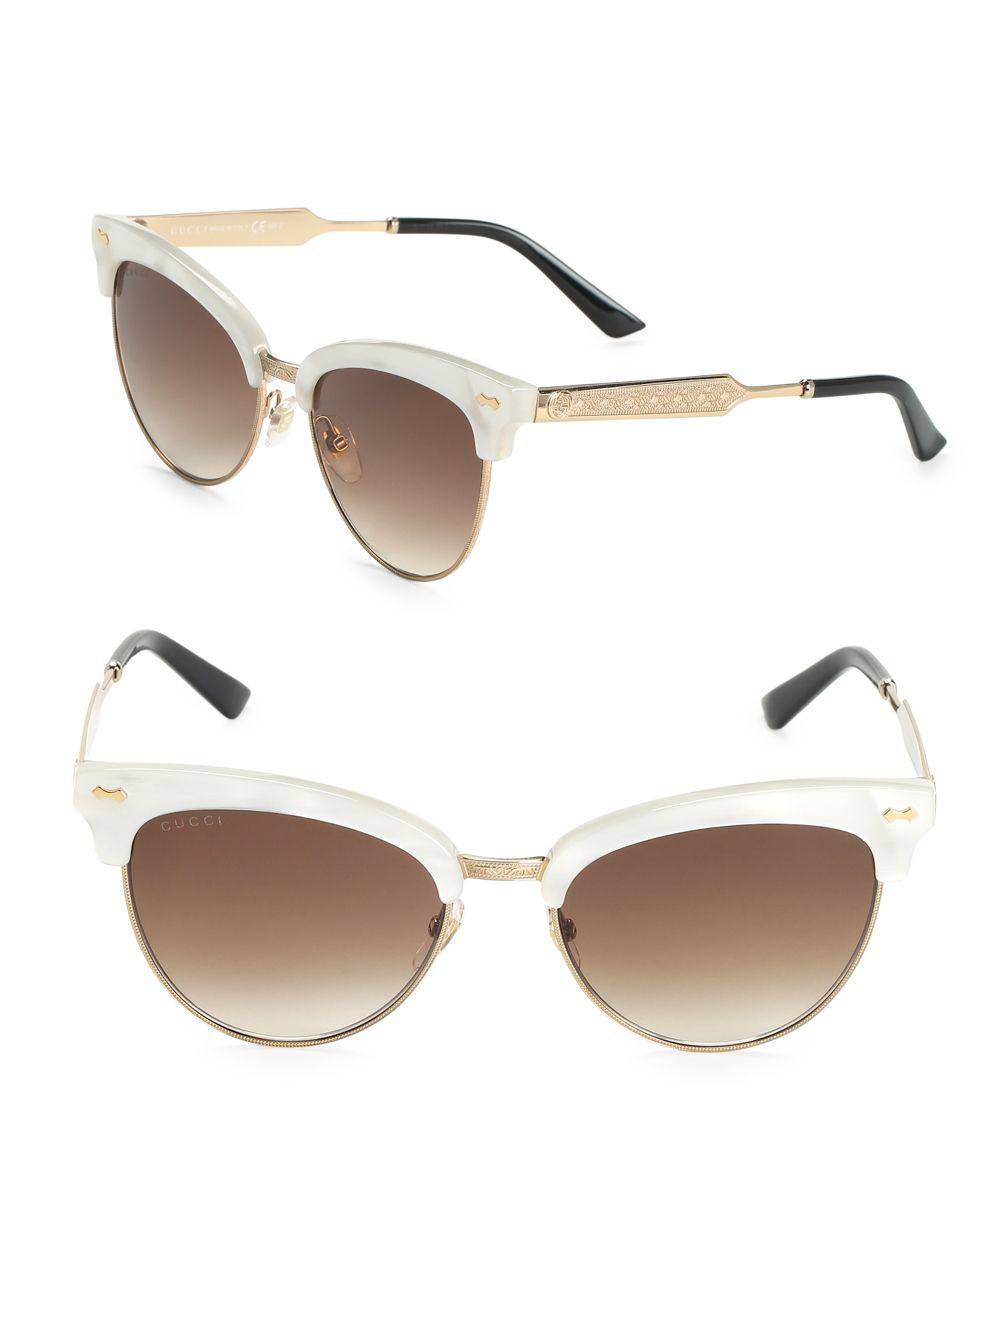 1f624fce70f Lyst - Gucci 55mm Mother-of-pearl Cat s Eye Sunglasses